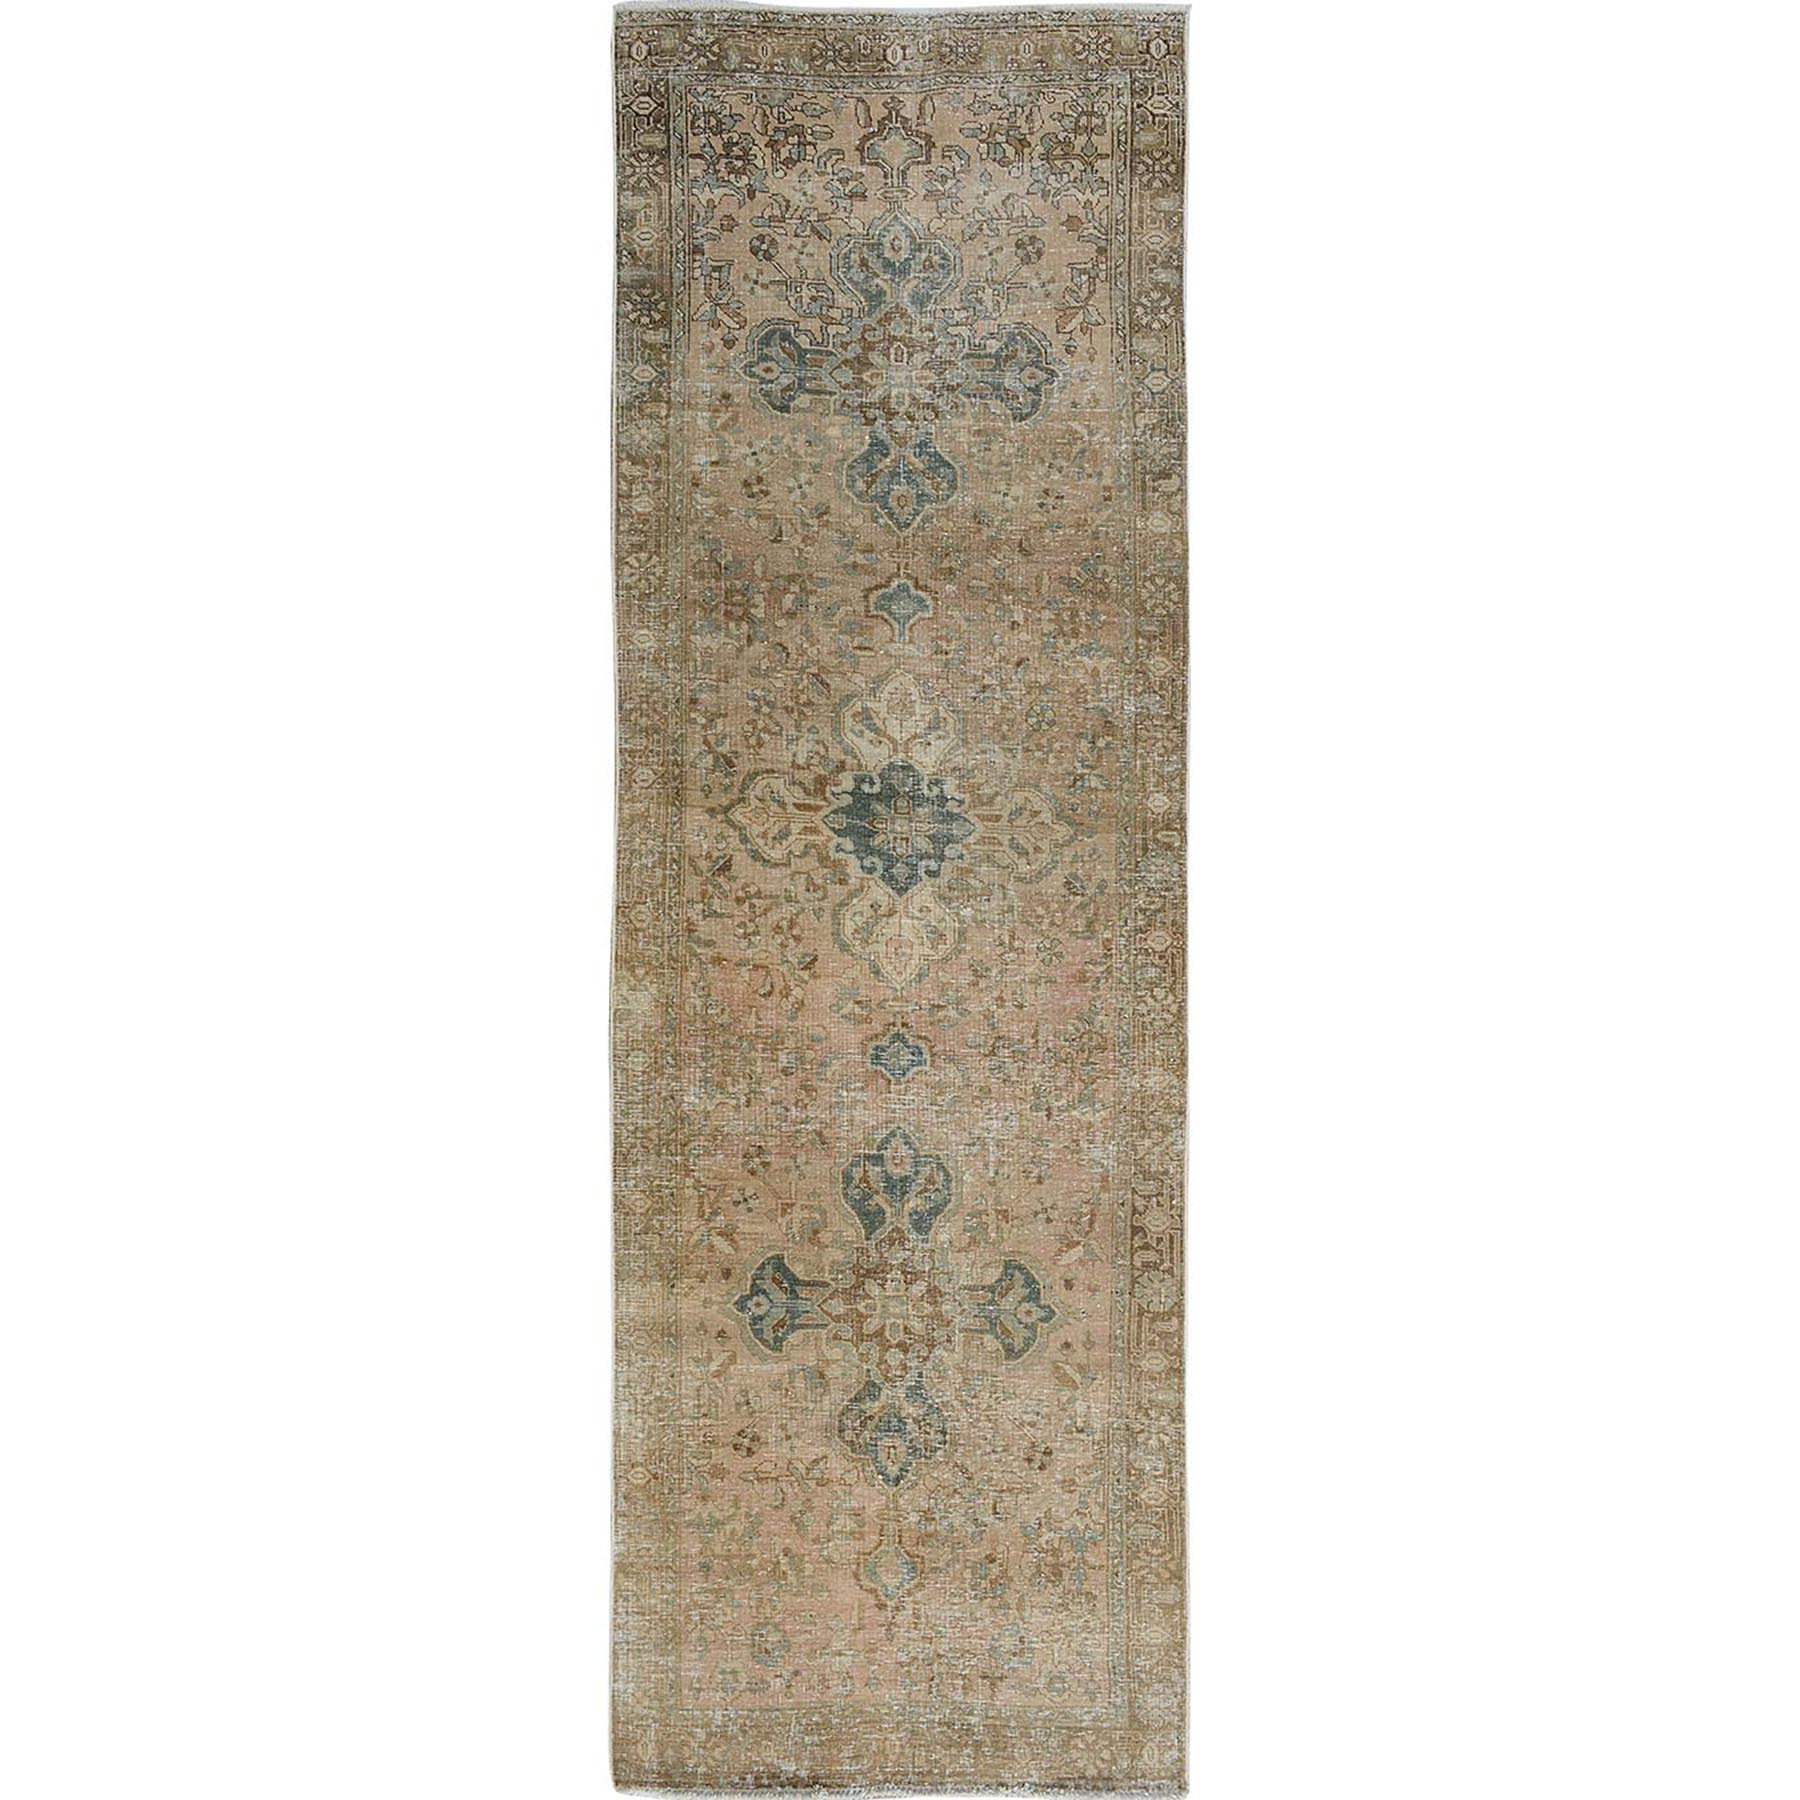 "3'6""x10'7"" Earth Tone Colors Old And Worn Down North West Persian Wide Runner Hand Woven Bohemian Rug"